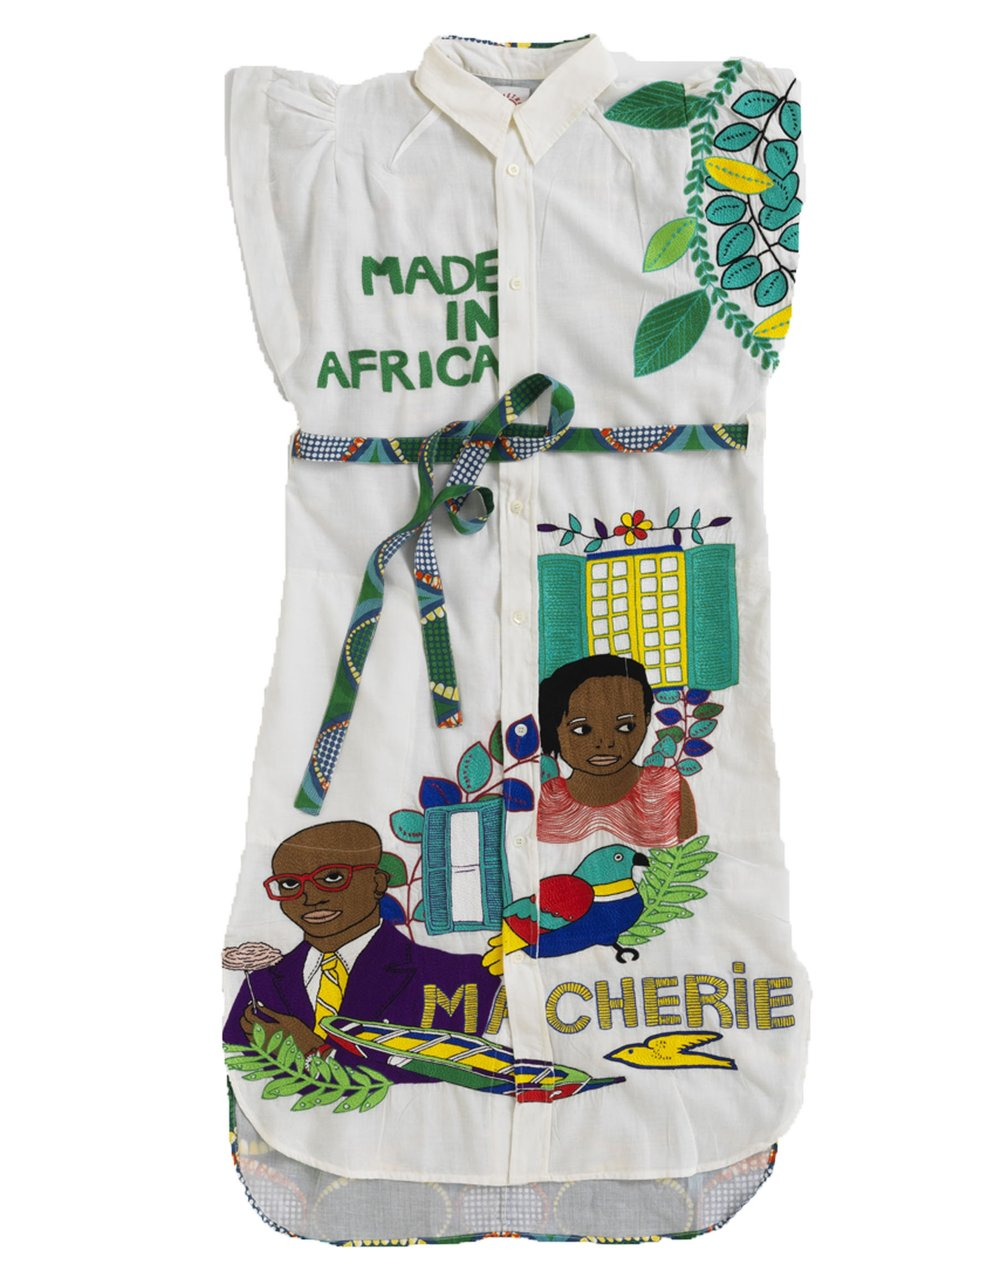 2018 S/S Collection Inspired Dress Shirt with Rue Saint-Joseph, Île de Gorée, Sénégal Design